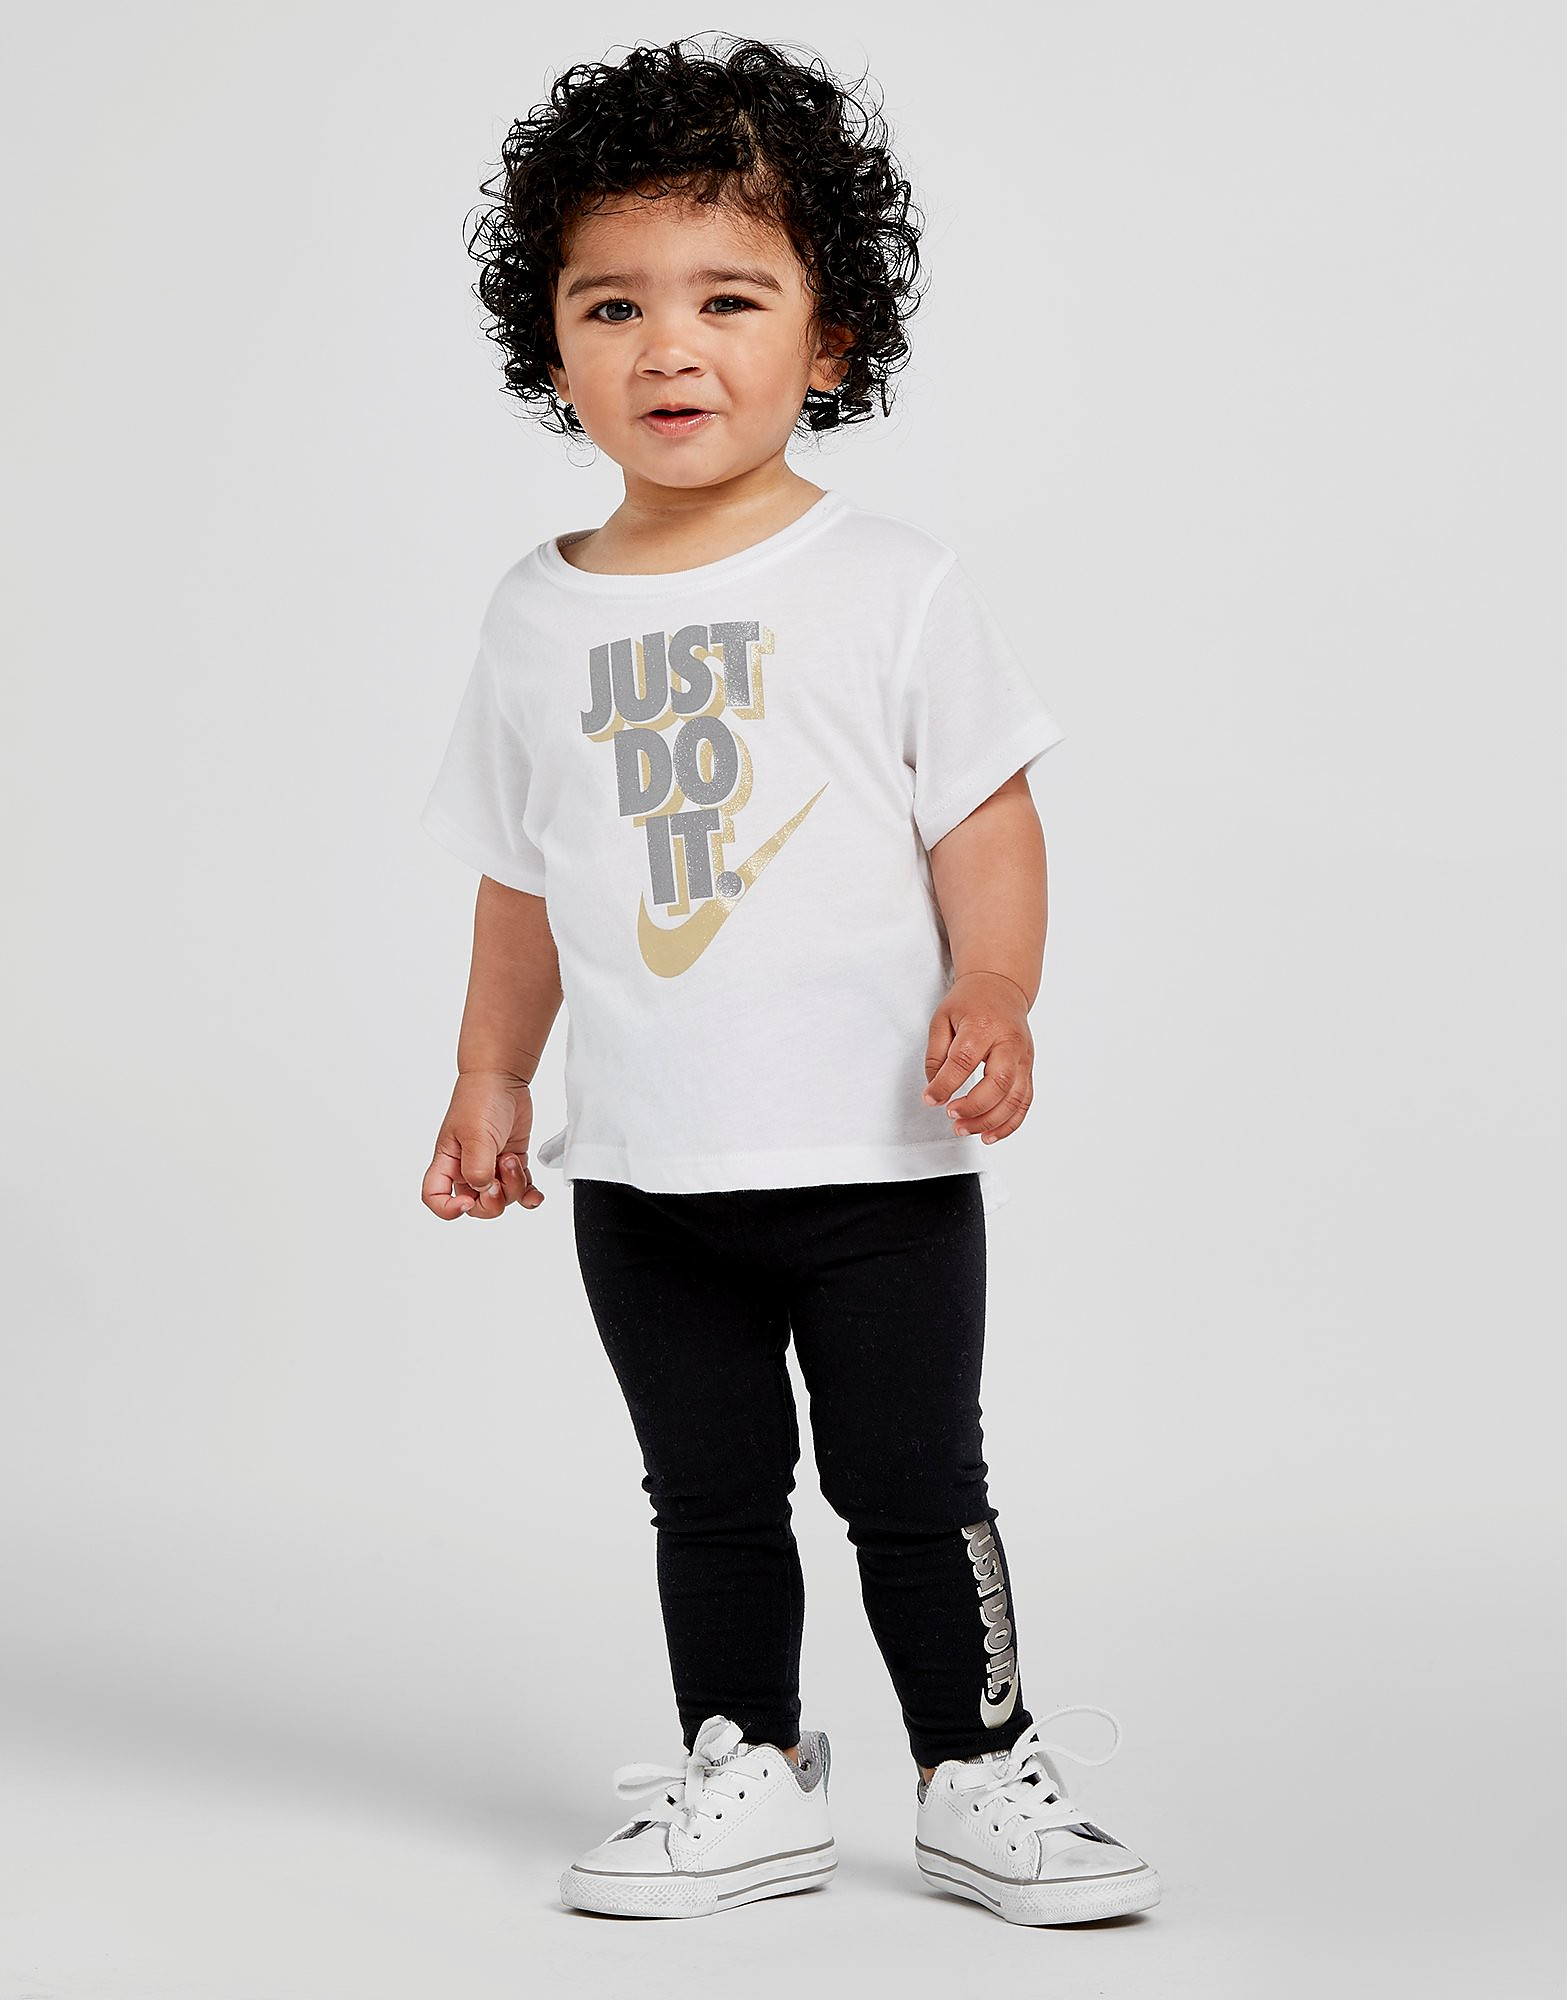 Nike T-shirt Girls' Just Do It Junior